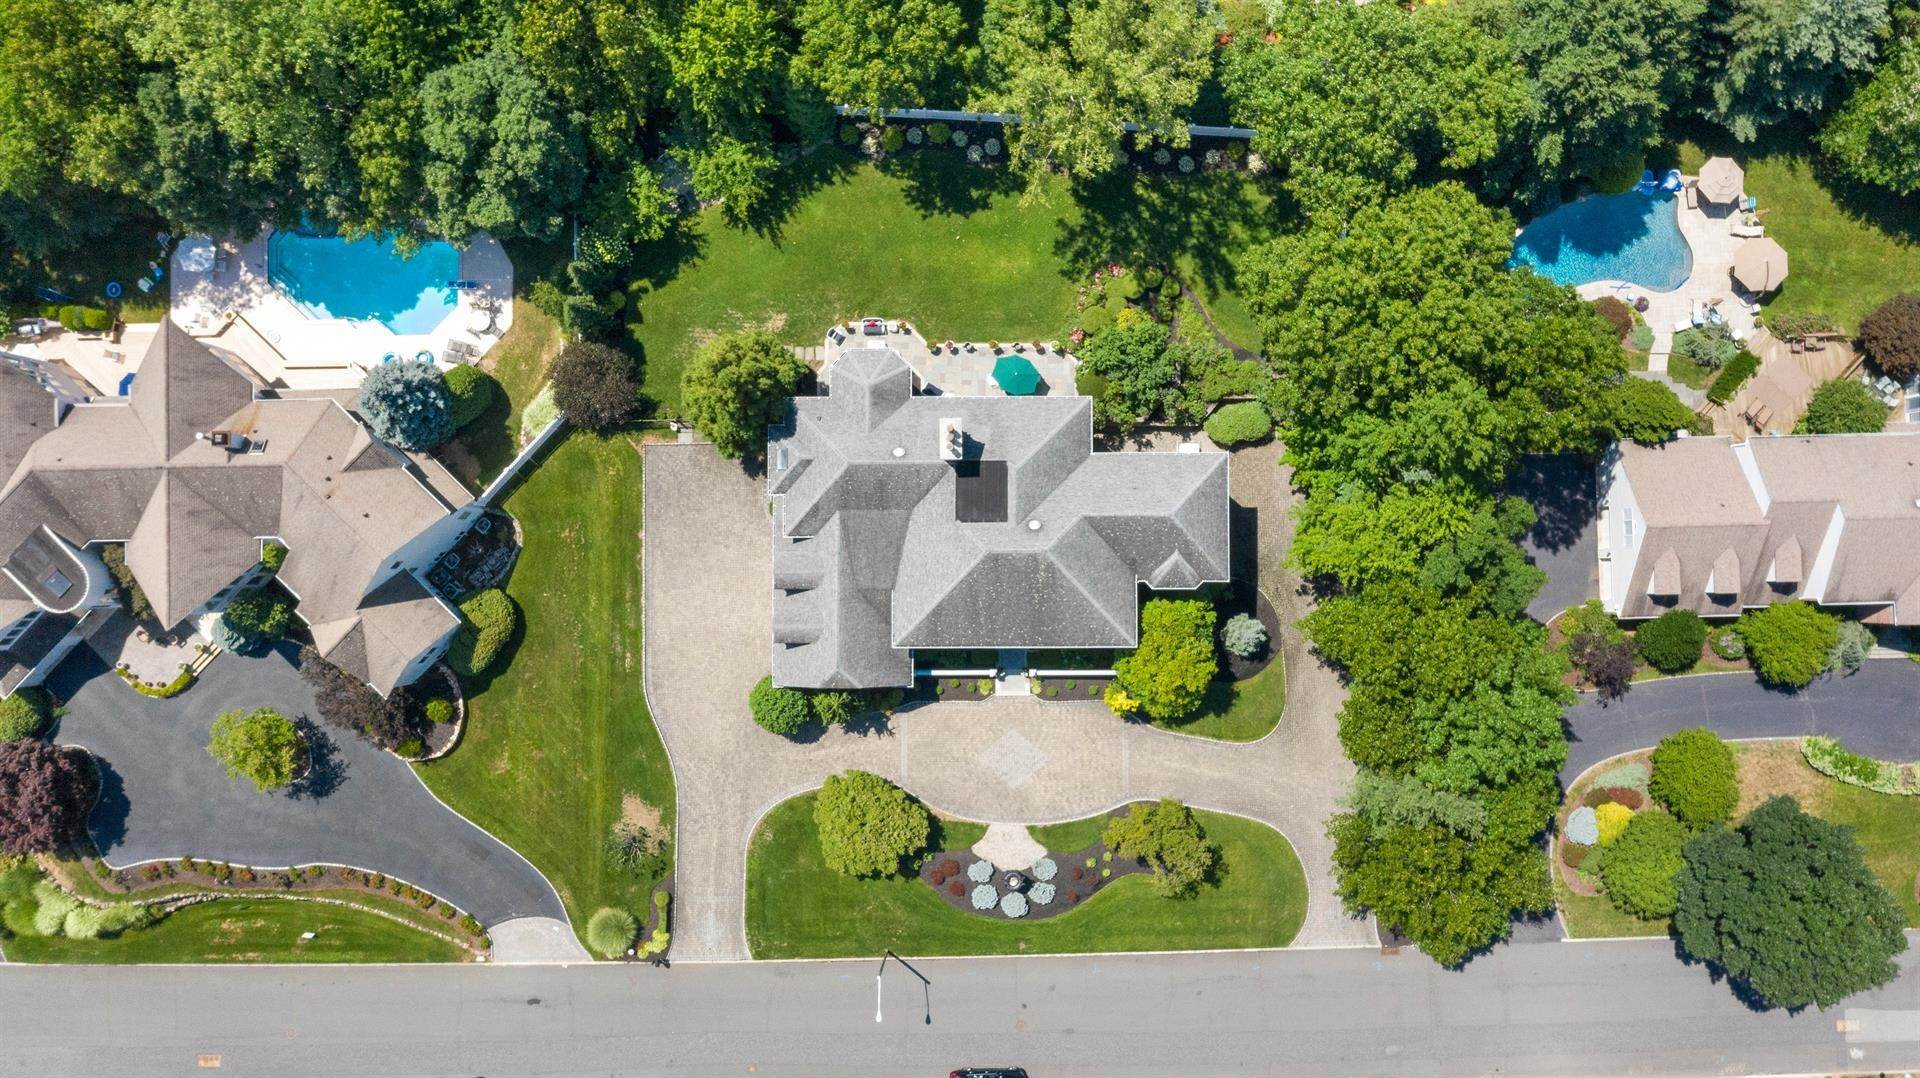 5. Residential for Sale at 15 Hunter Ridge Woodcliff Lake, New Jersey, 07677 United States